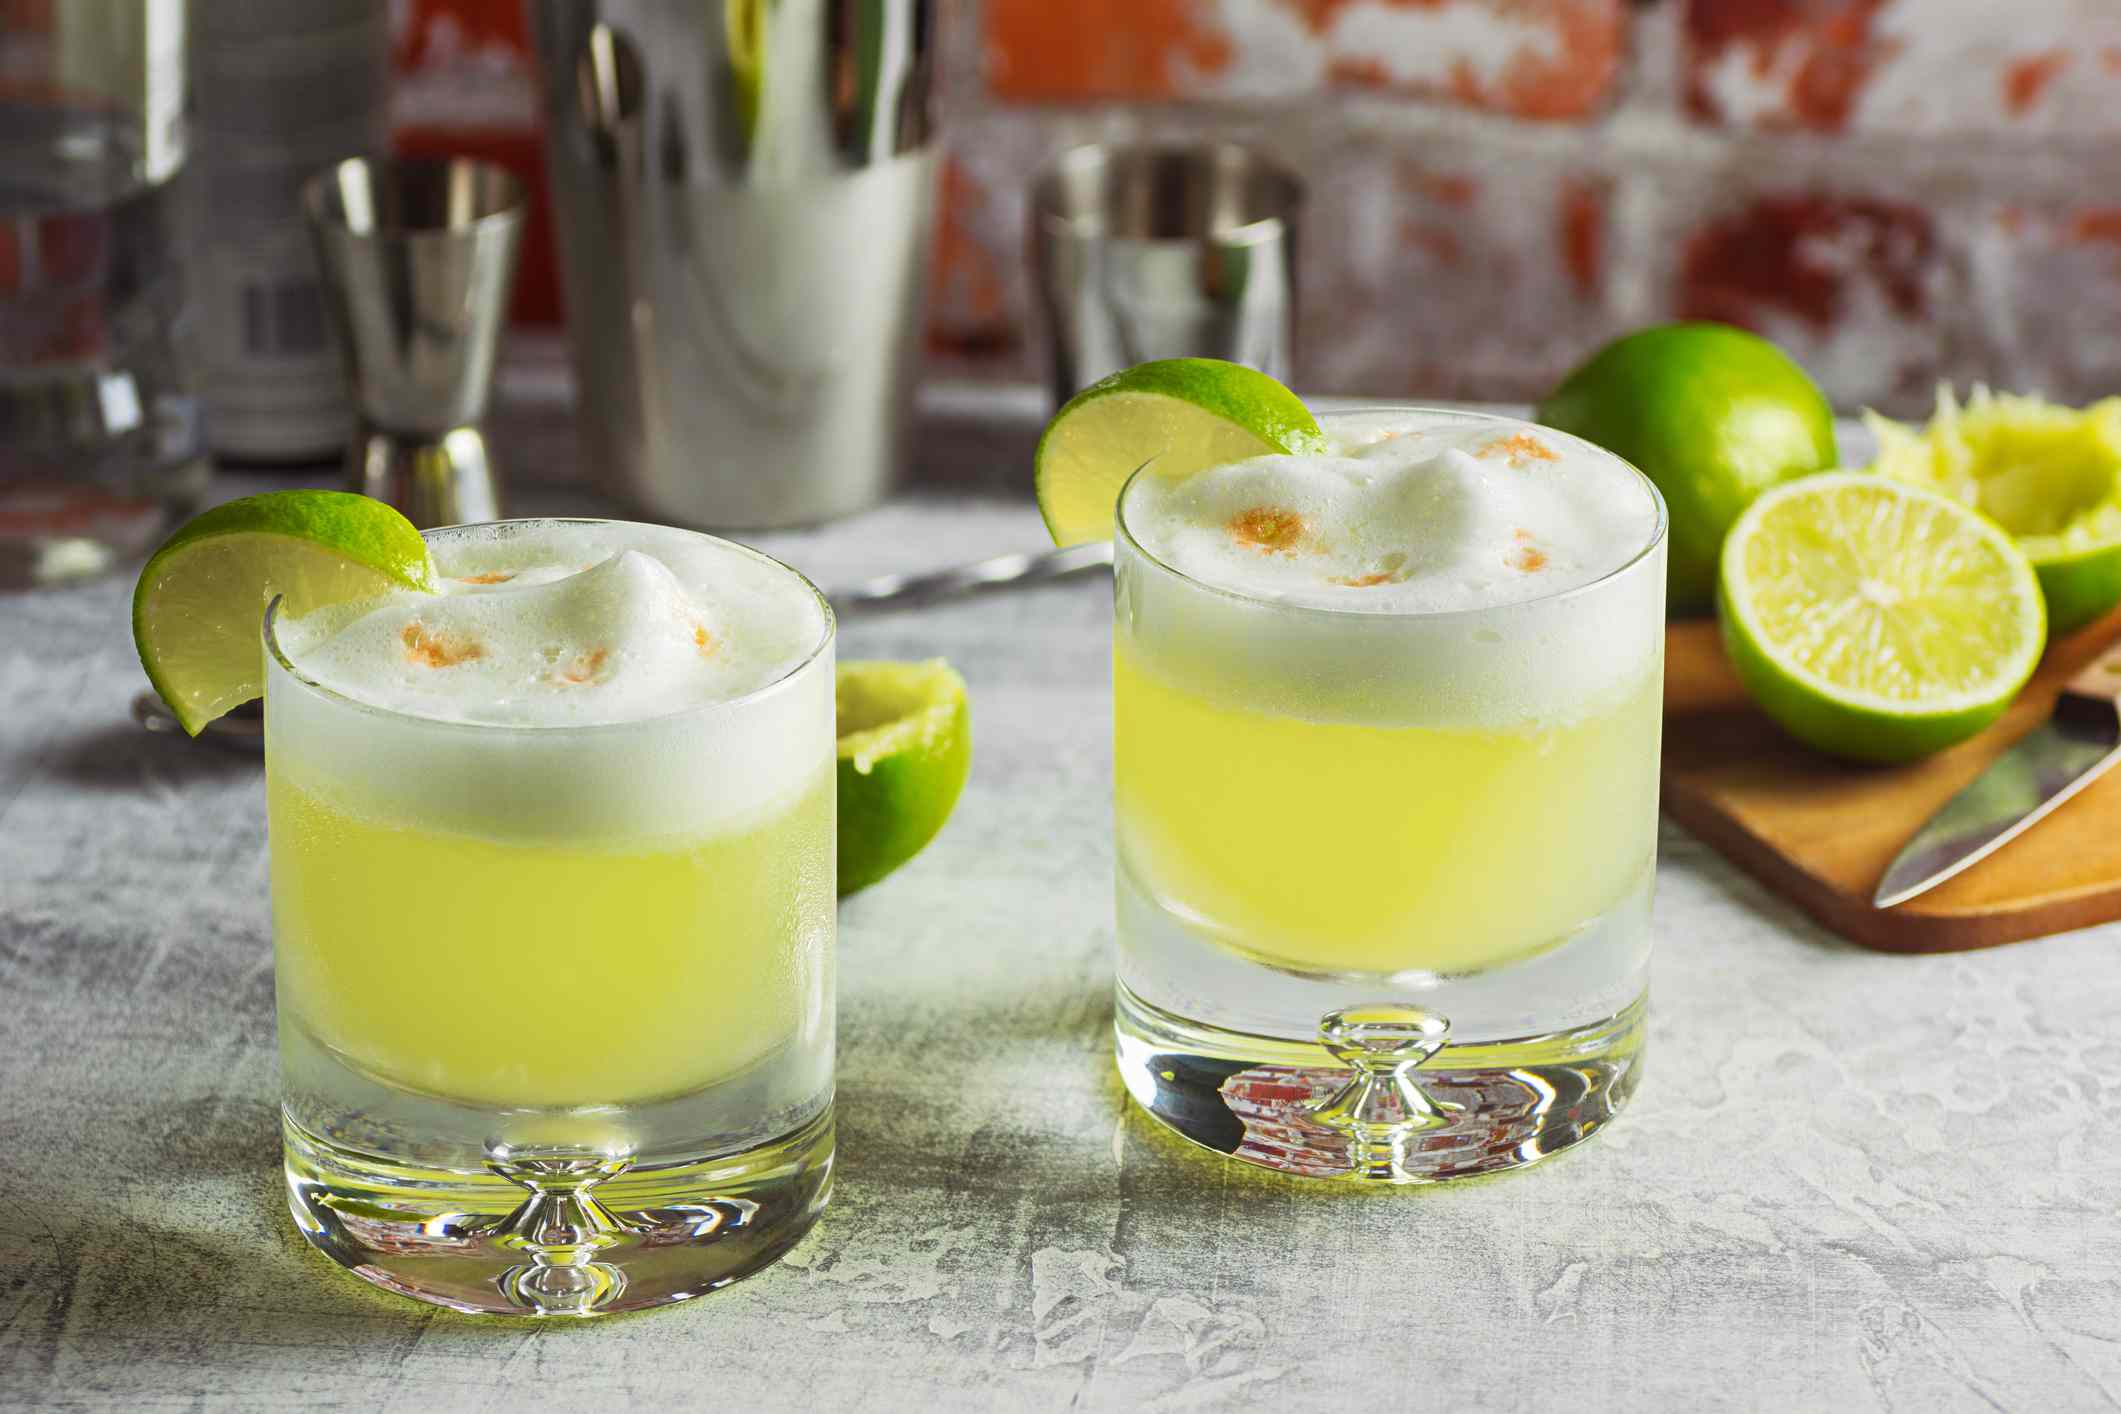 Two Pisco Sour Cocktails on the Bar with Ingredients